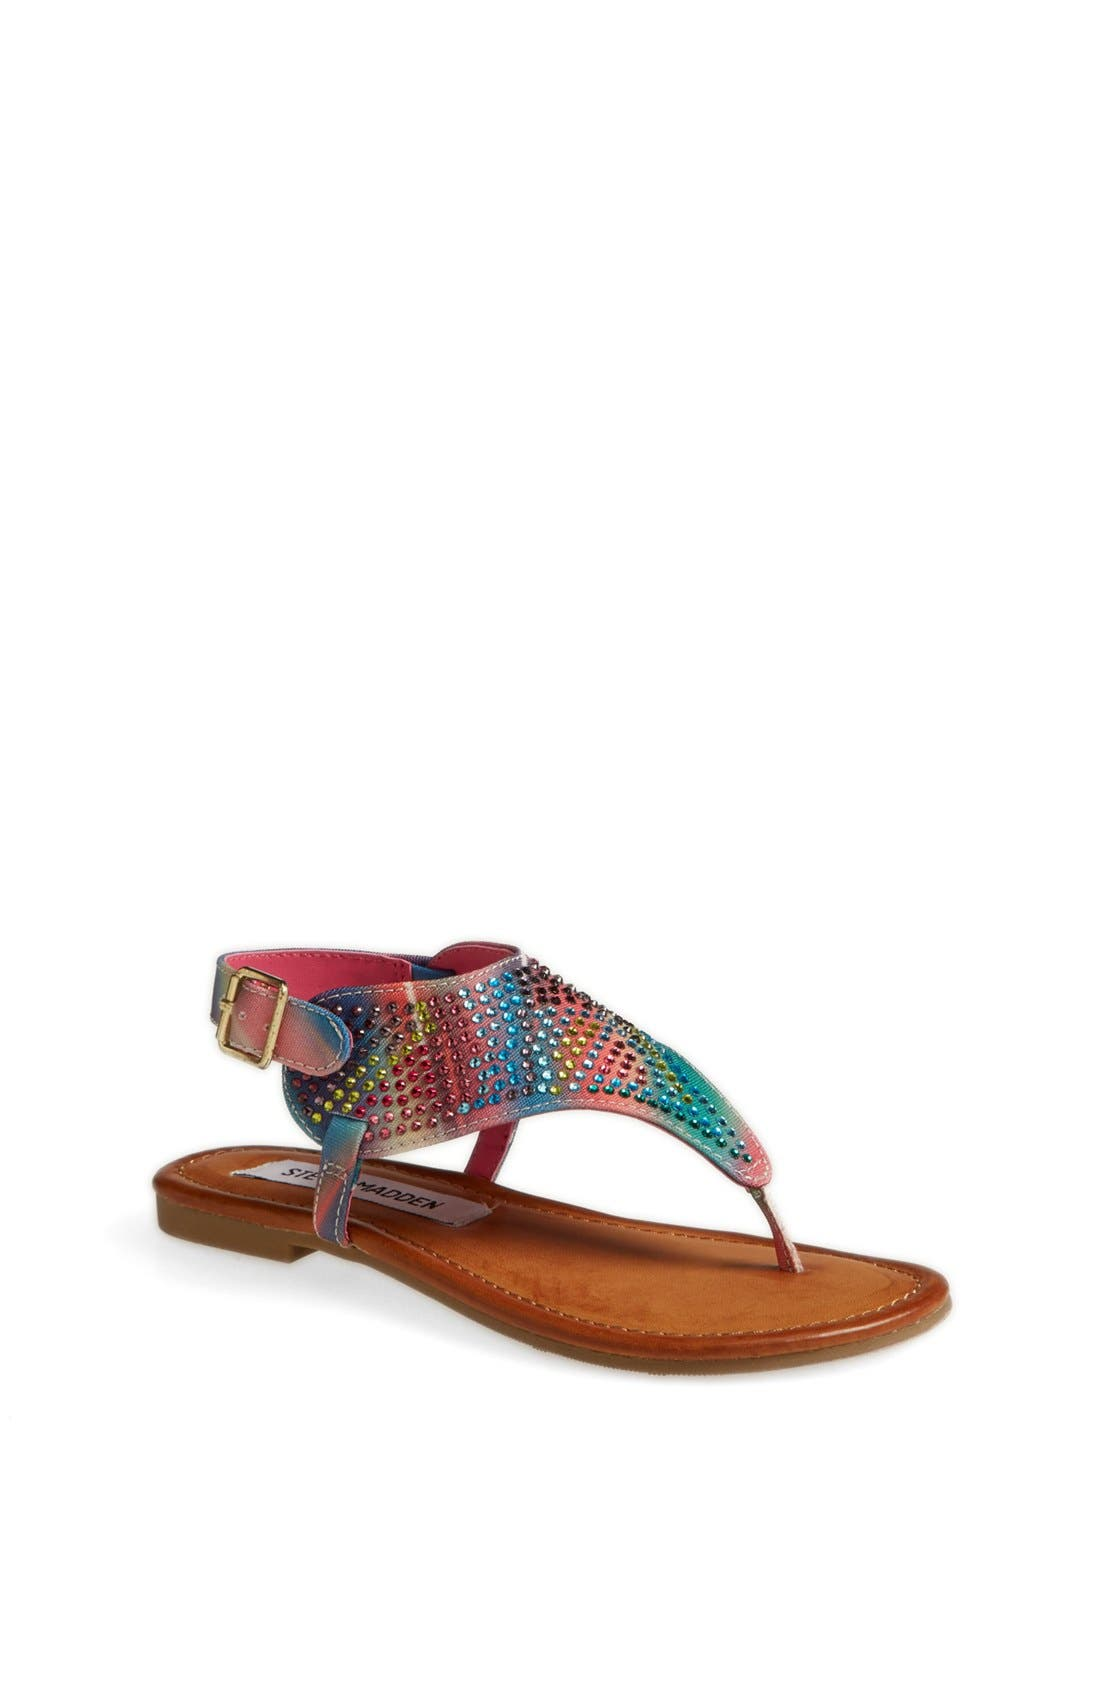 Alternate Image 1 Selected - Steve Madden 'Bizee' Sandal (Toddler, Little Kid & Big Kid)